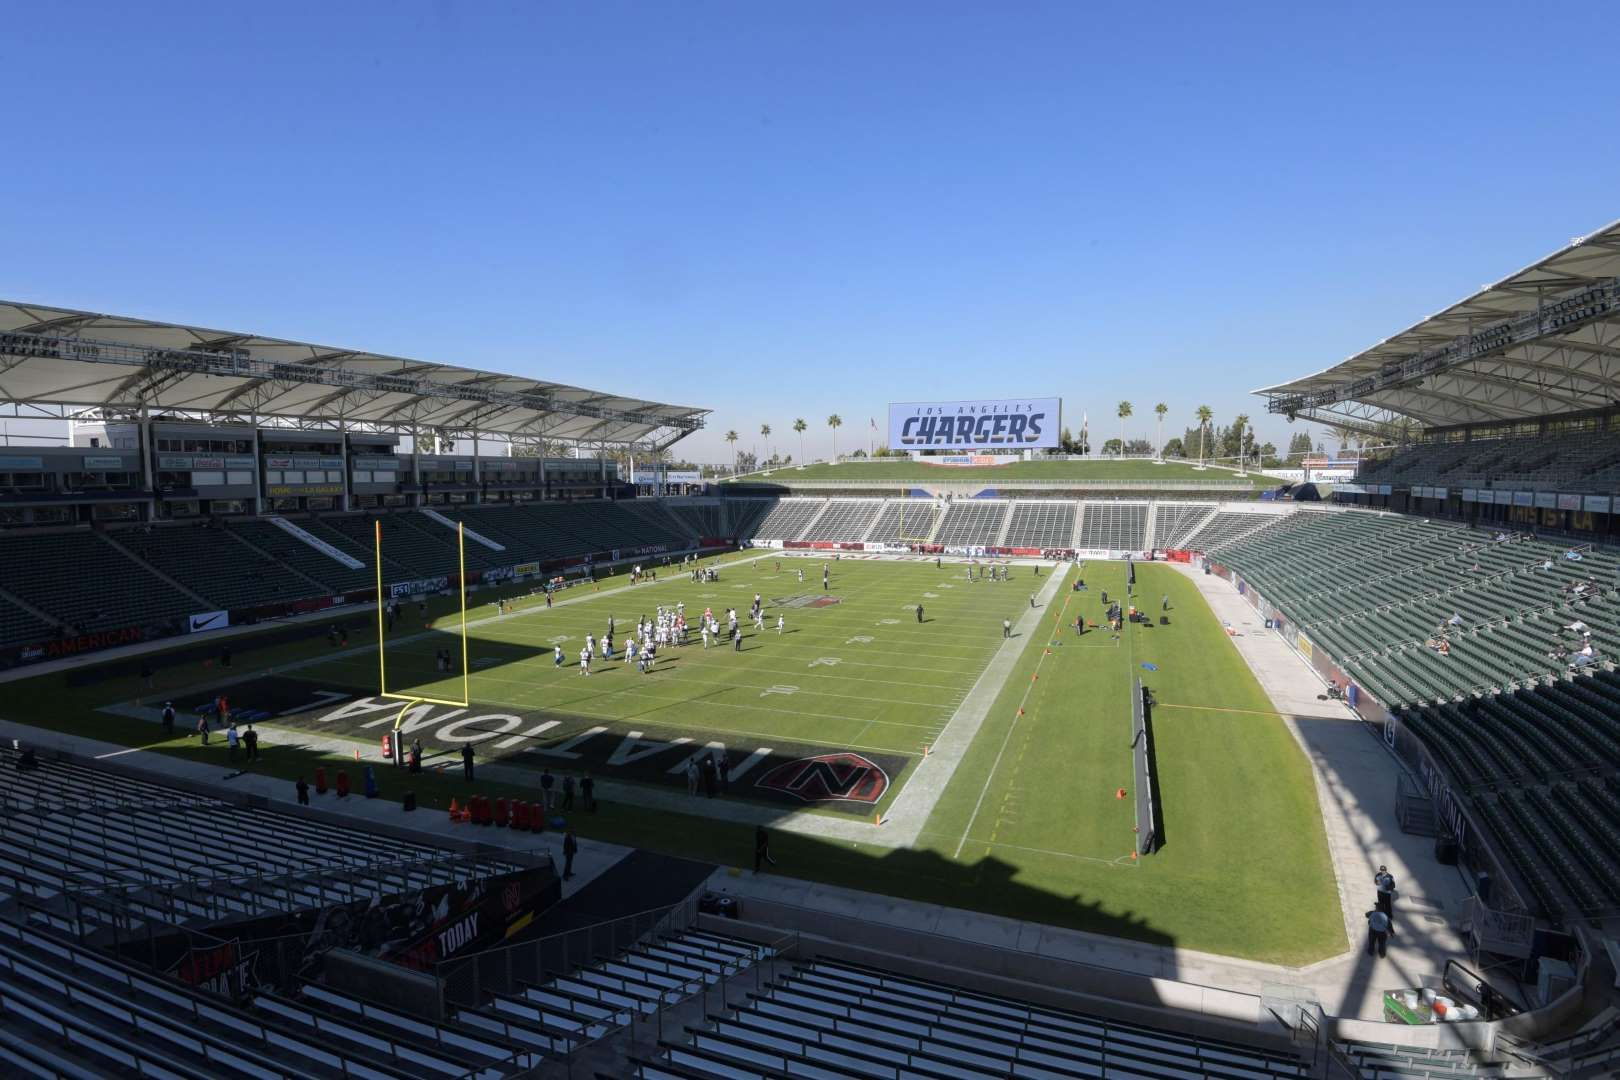 Ranking Every Nfl Stadium 17 Stubhub Center Los Angeles Chargers The Chargers Will Play In A Soccer Stadium For Nfl Stadiums Stadium Los Angeles Chargers